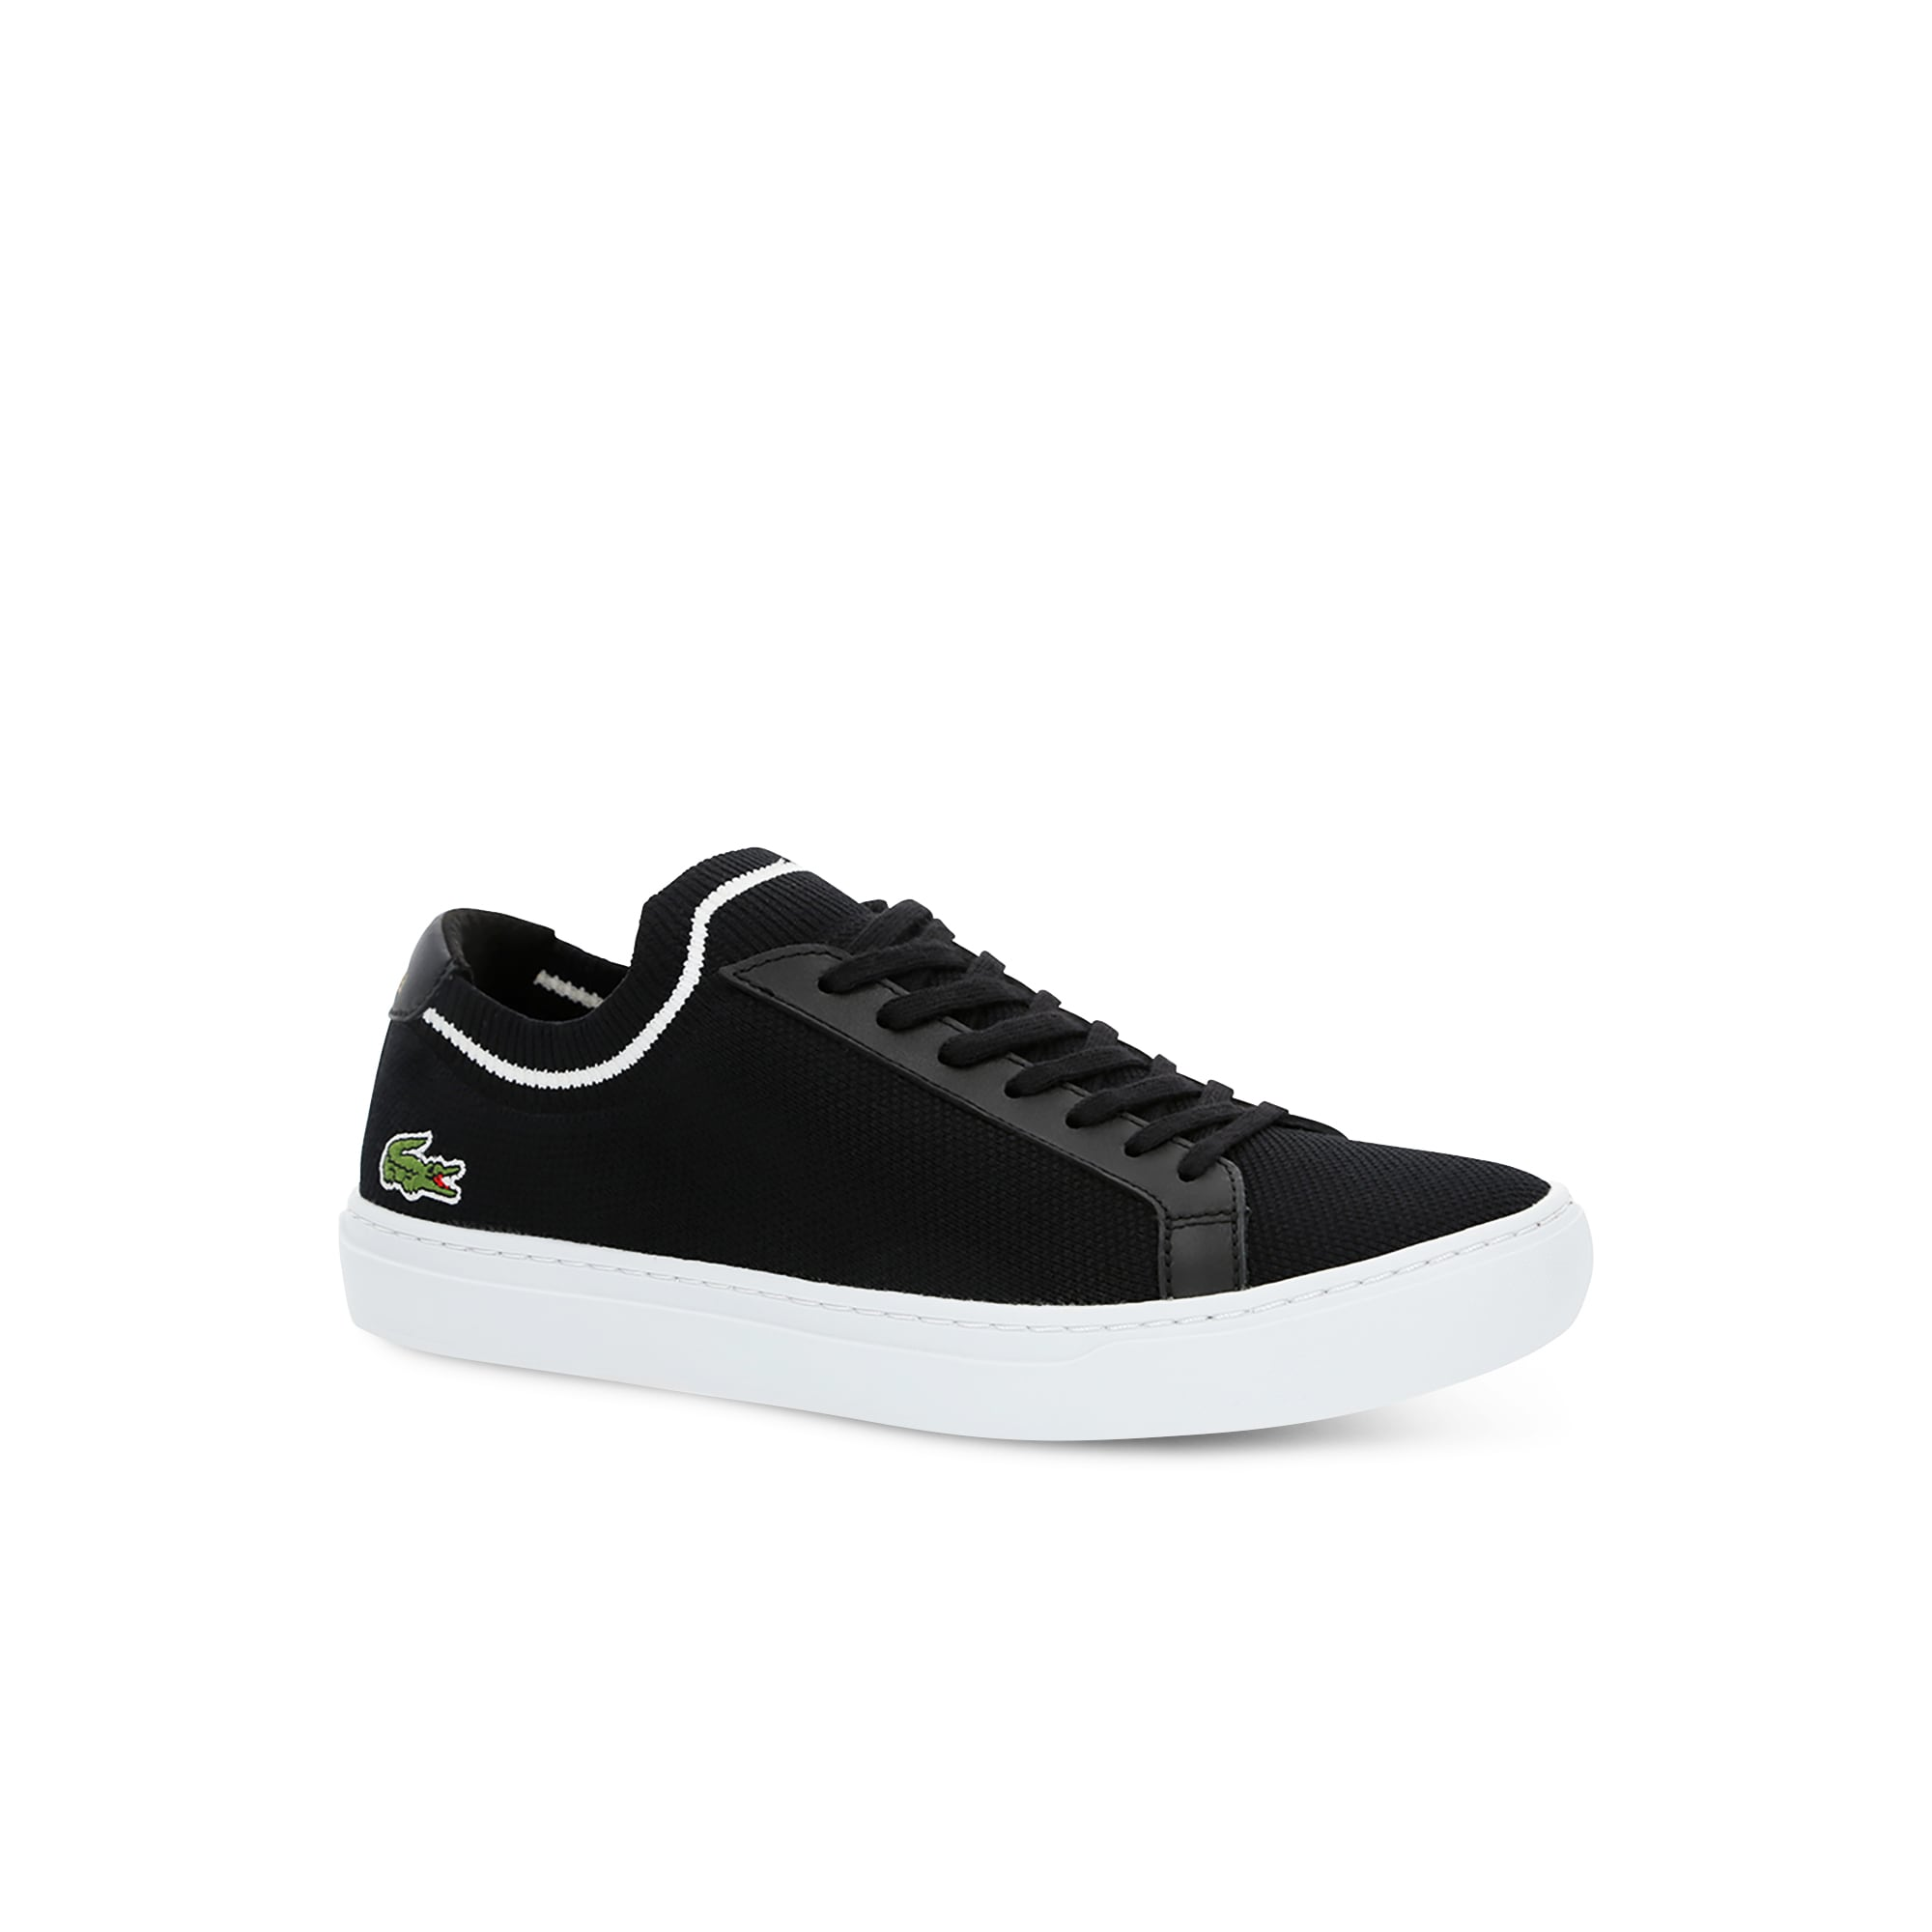 06c732869 Lacoste shoes for men  Sneakers